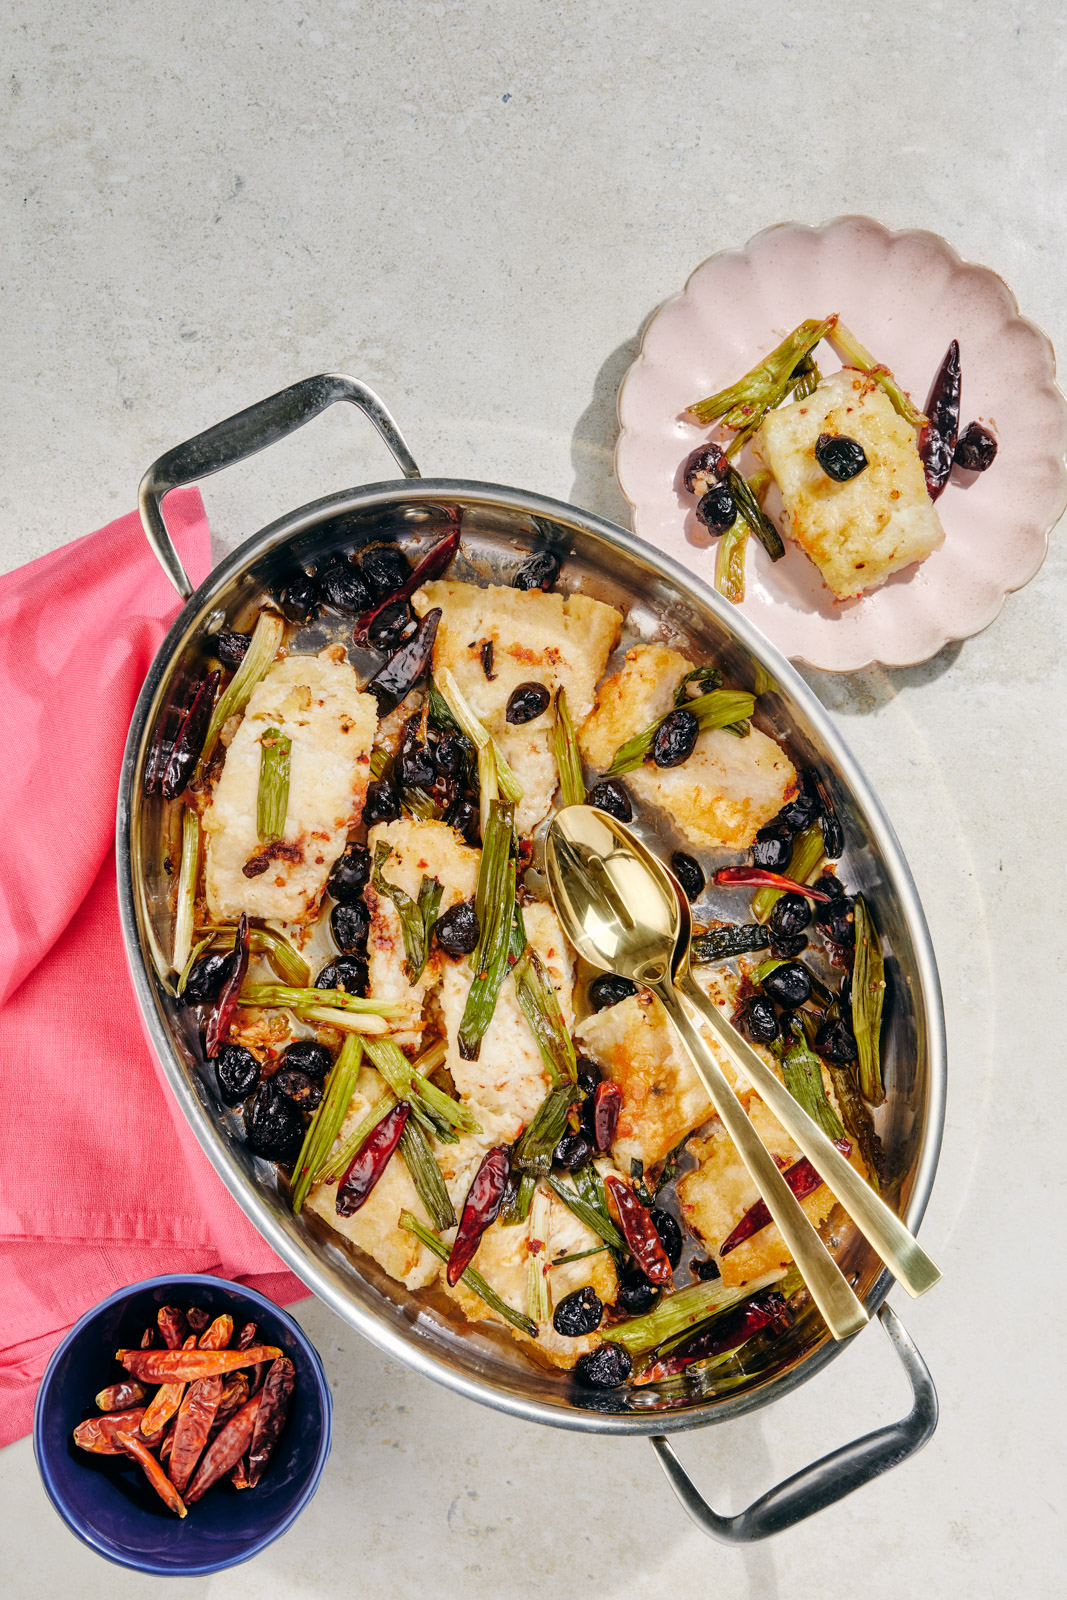 Baked codfish with chilis and olives